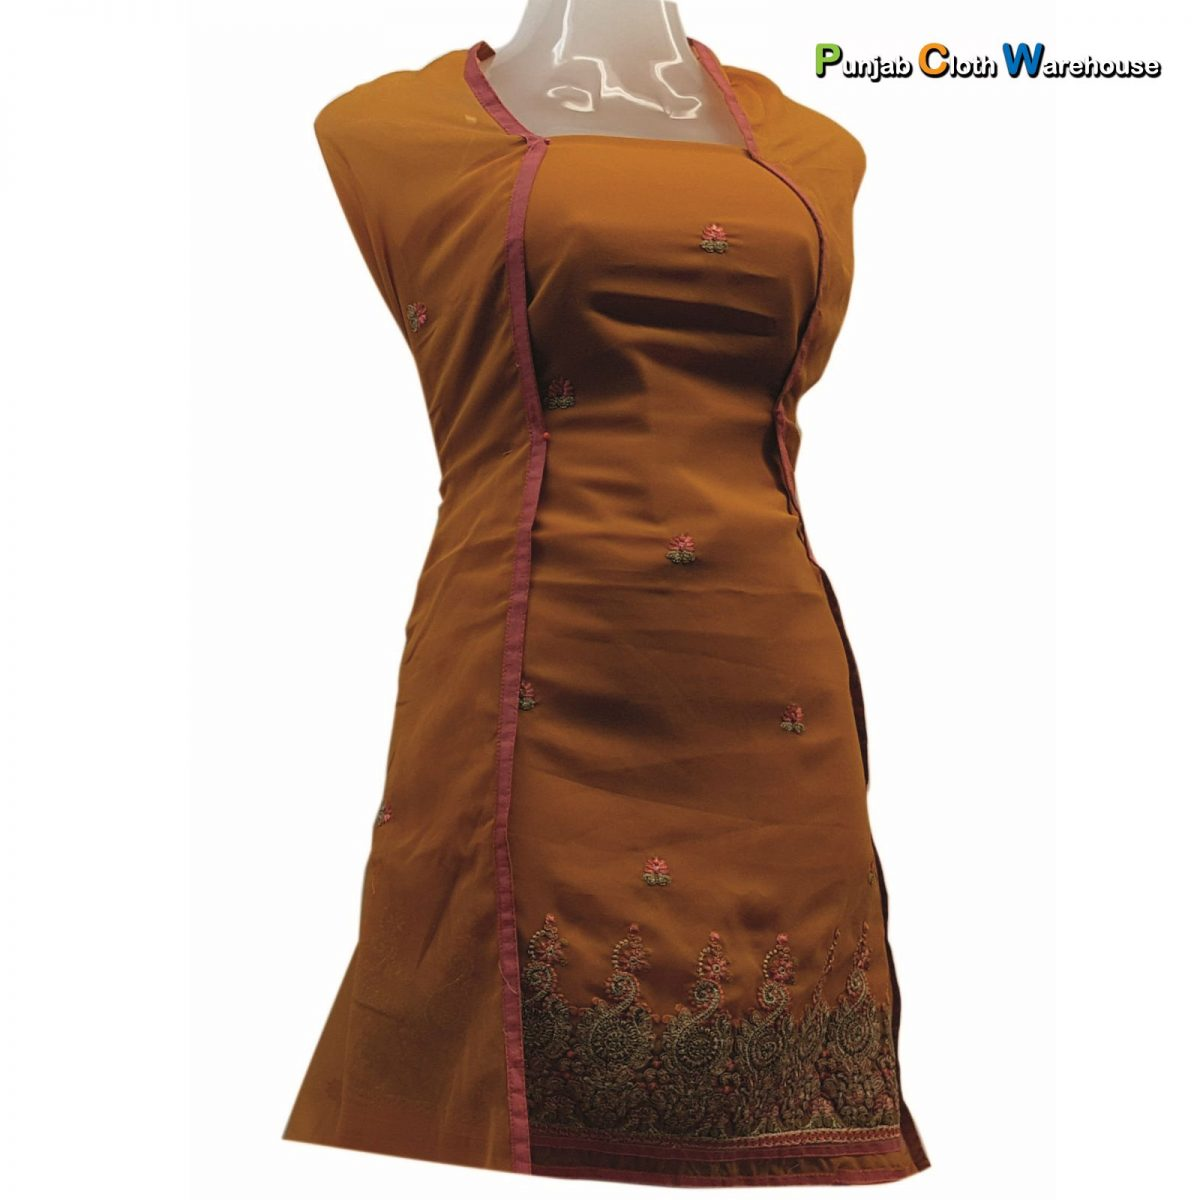 Ladies Suits - Cut Piece - Punjab Cloth Warehouse, Surrey (56)